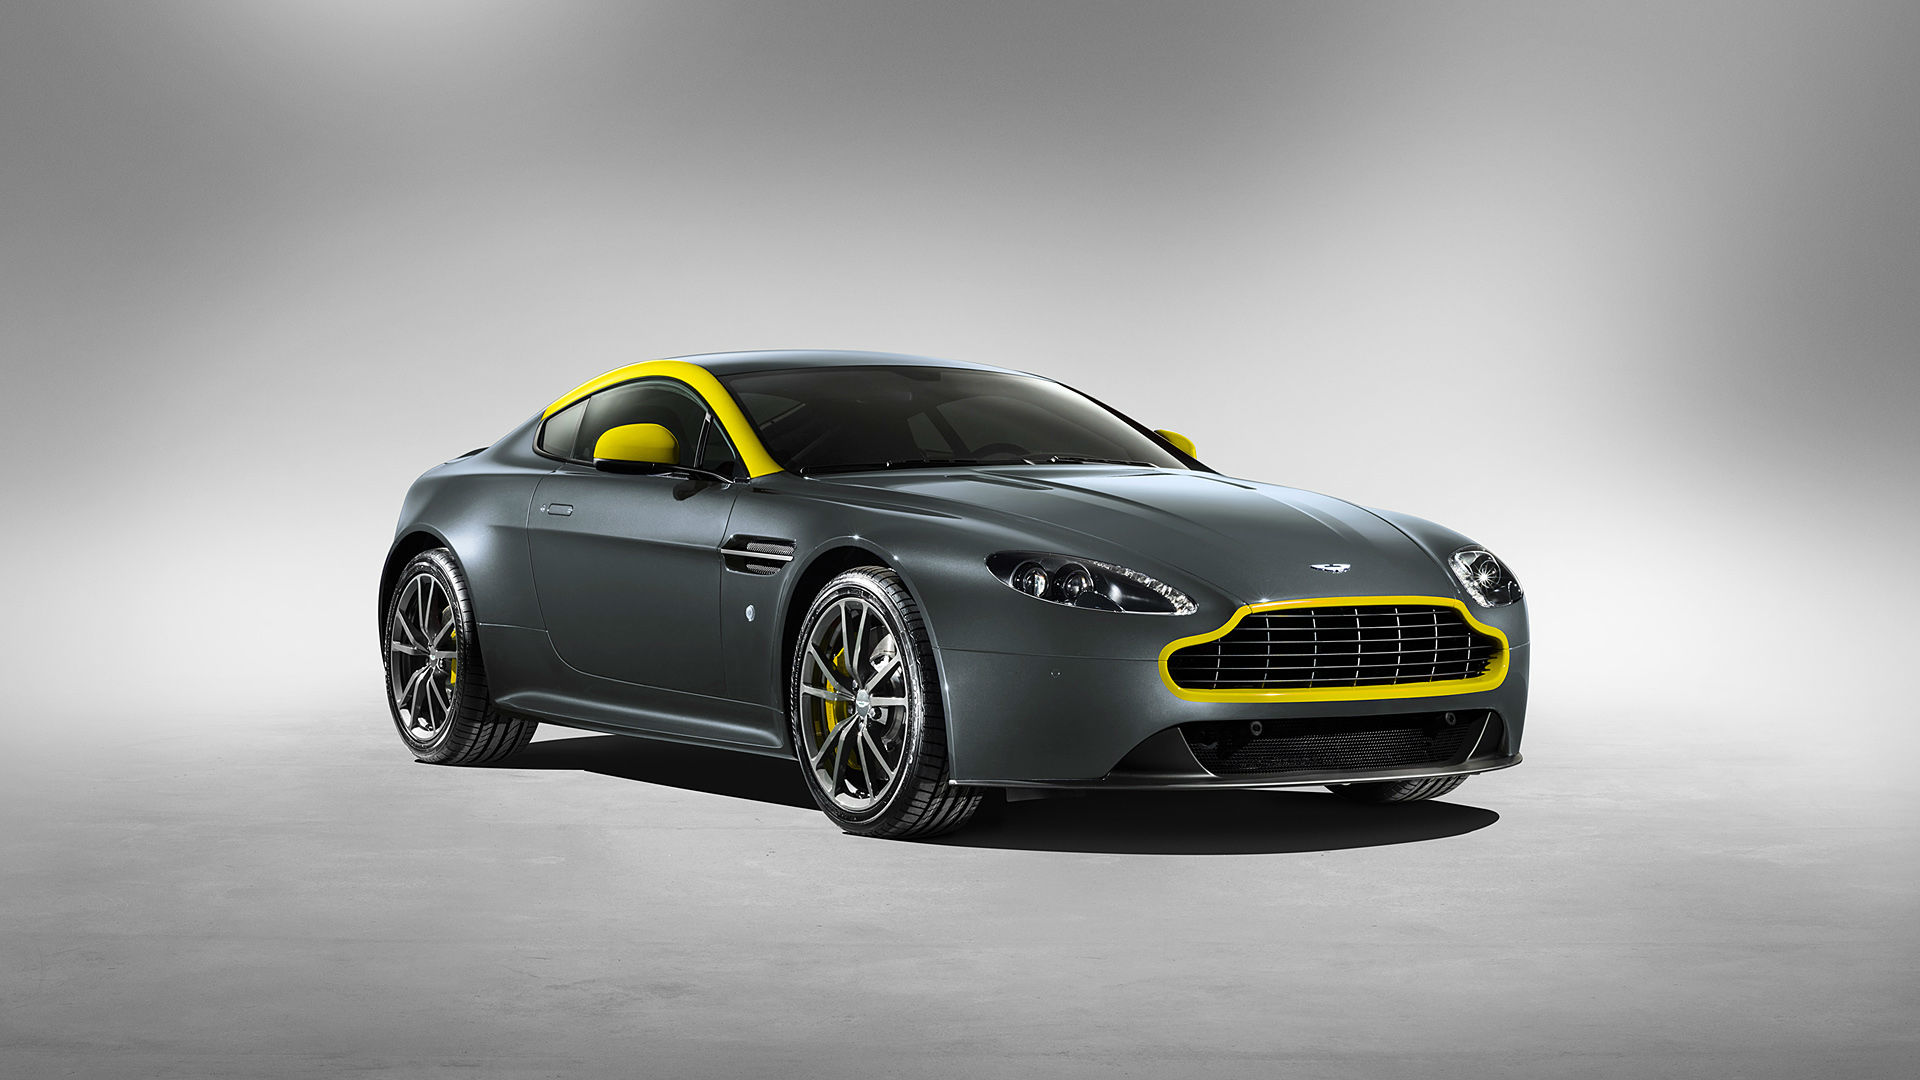 2015 Aston Martin V8 Vantage N430 Car Wallpaper 6 1920x1080